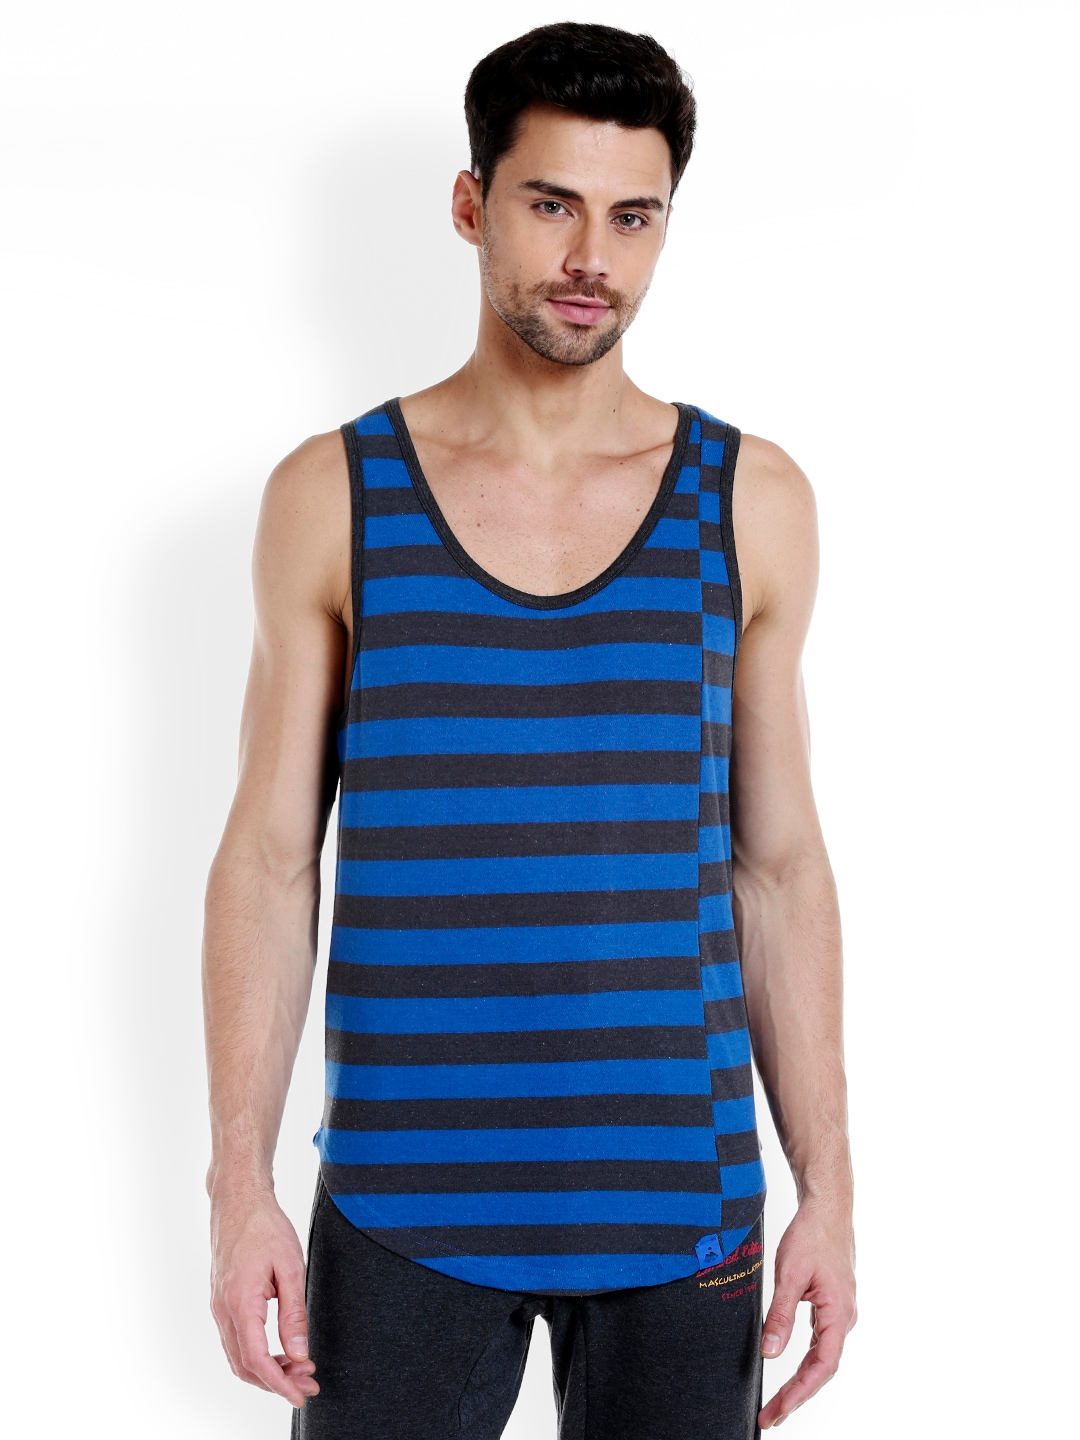 Masculino Latino Men Blue & Black Striped T-shirt MLF4030-E image